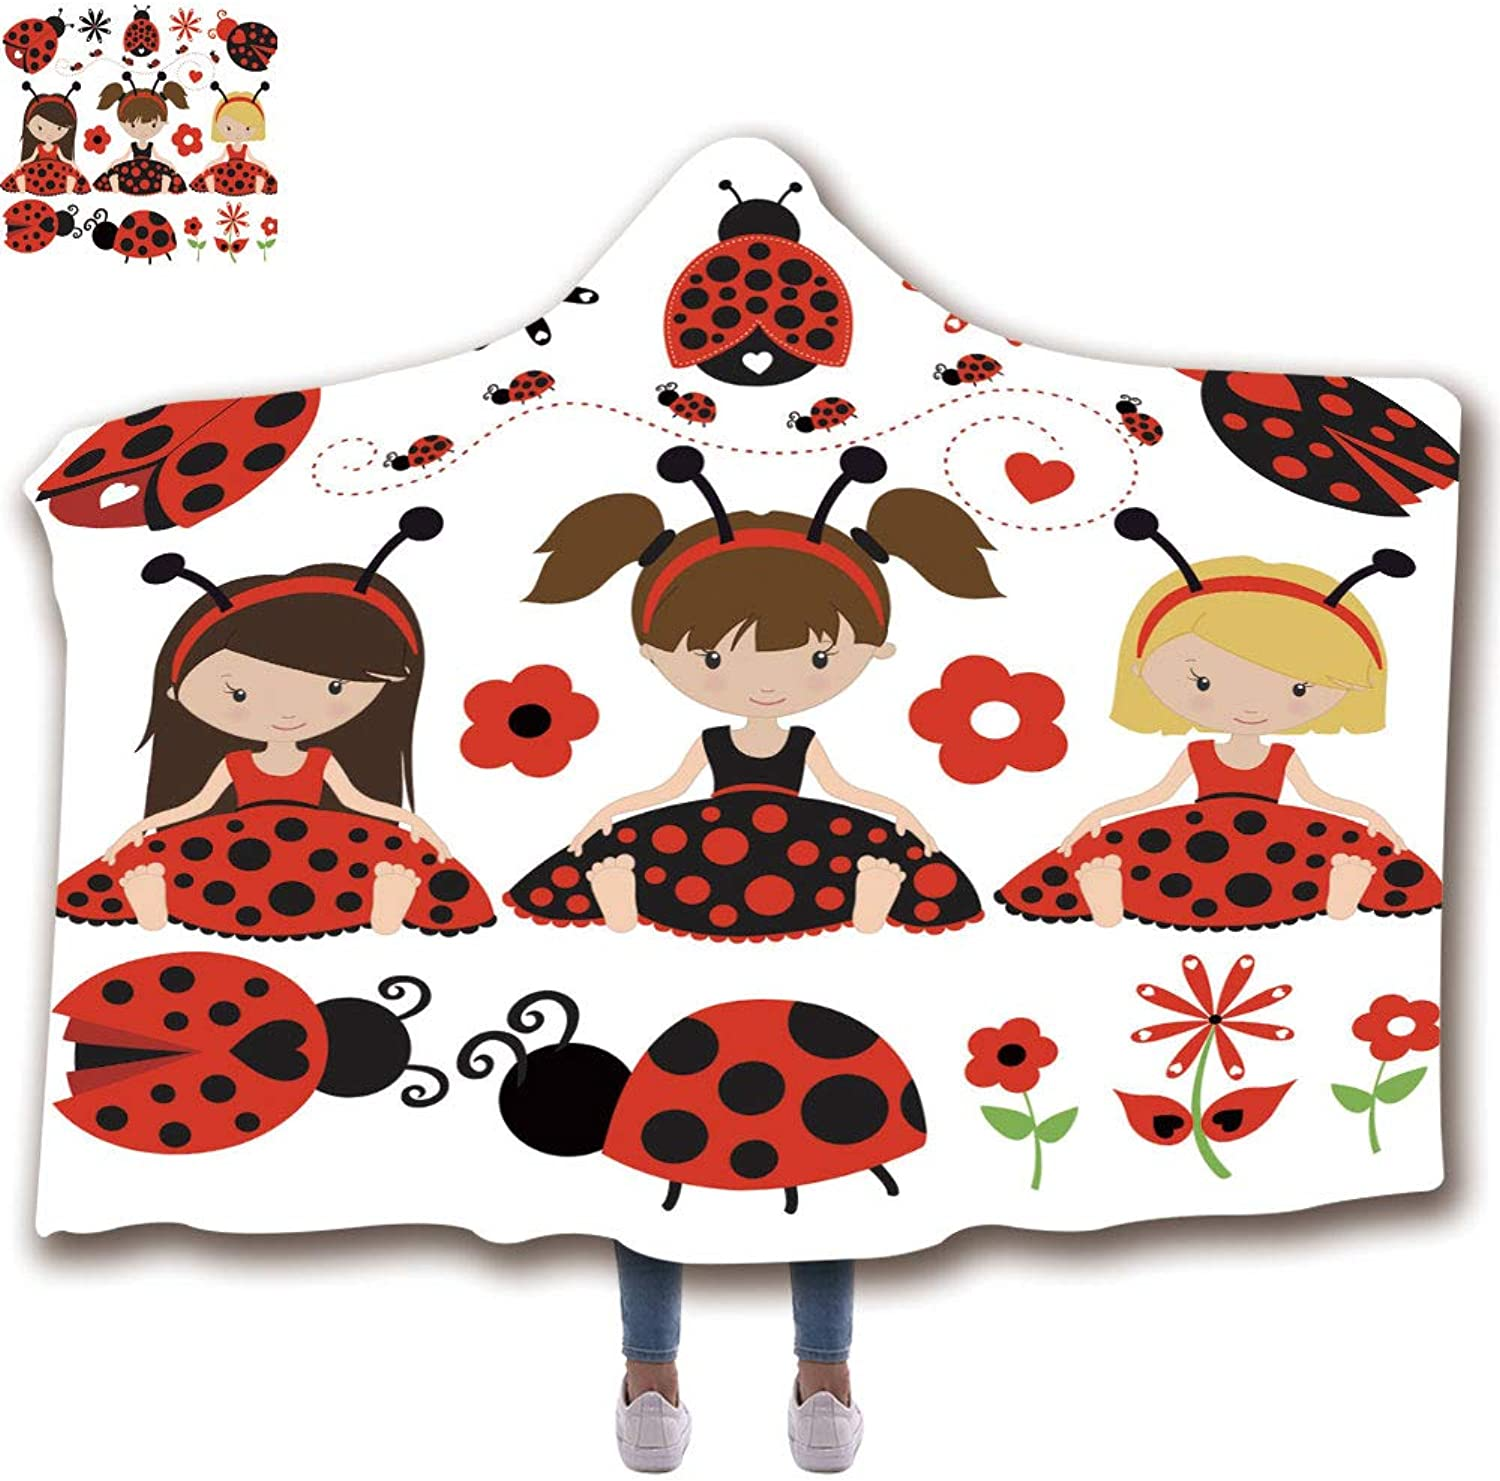 Hooded Blanket for Adults (59  H x 79  W) Wearable Portable Warm Thicken Soft Plush 3D Printed Pattern Throw Hooded Blanket, Cute Ladybug Girls